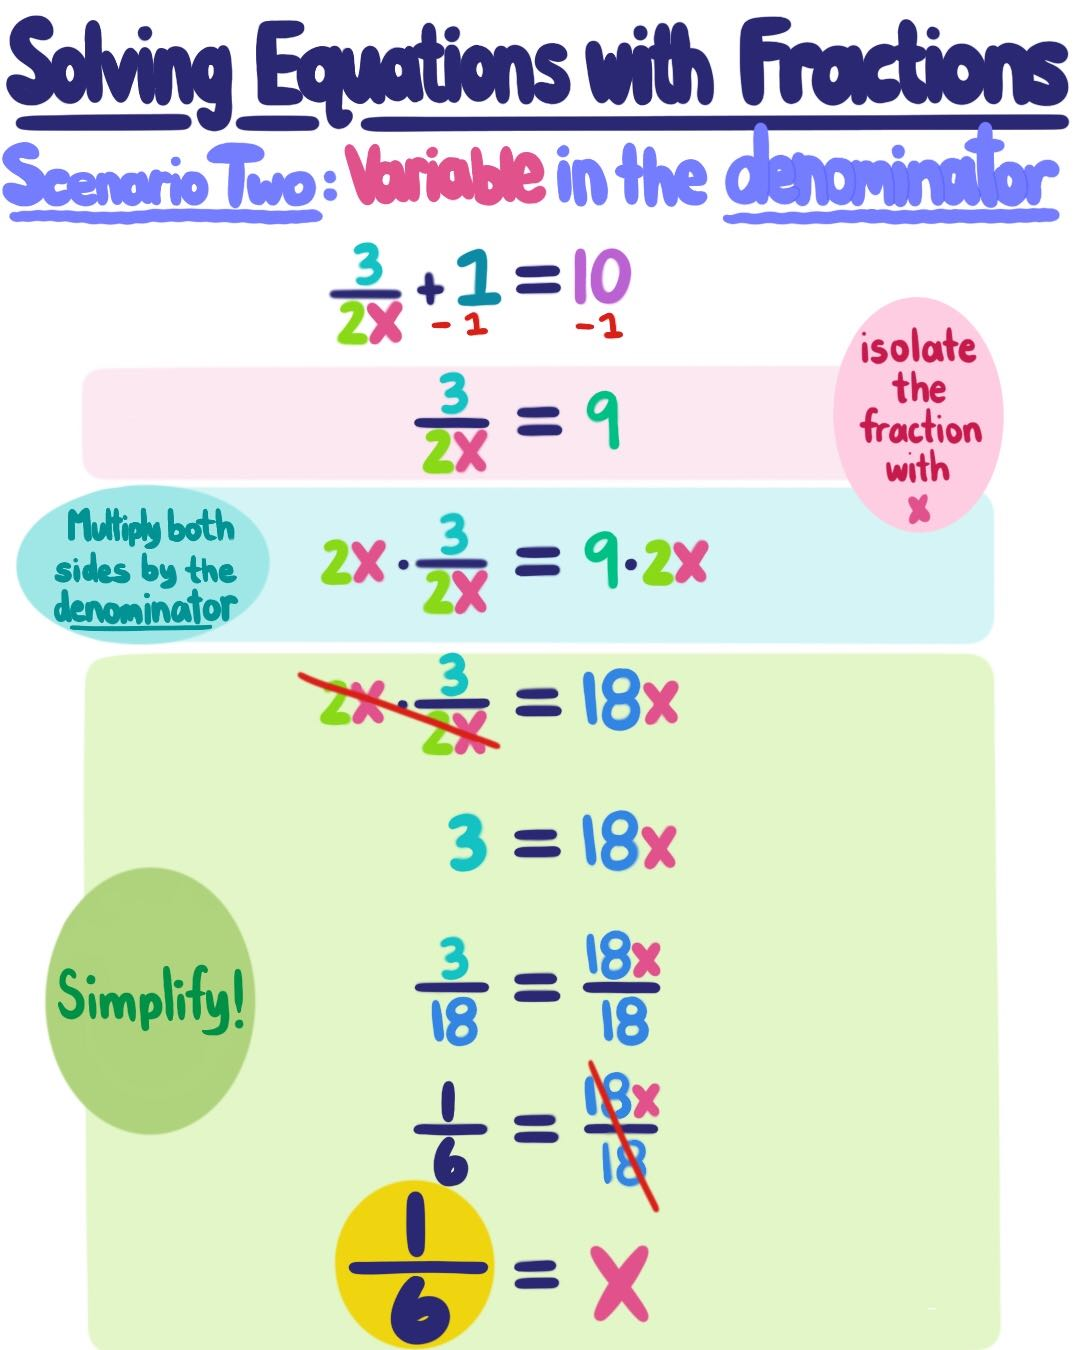 How To Solve Linear Equations With Fractions In Them